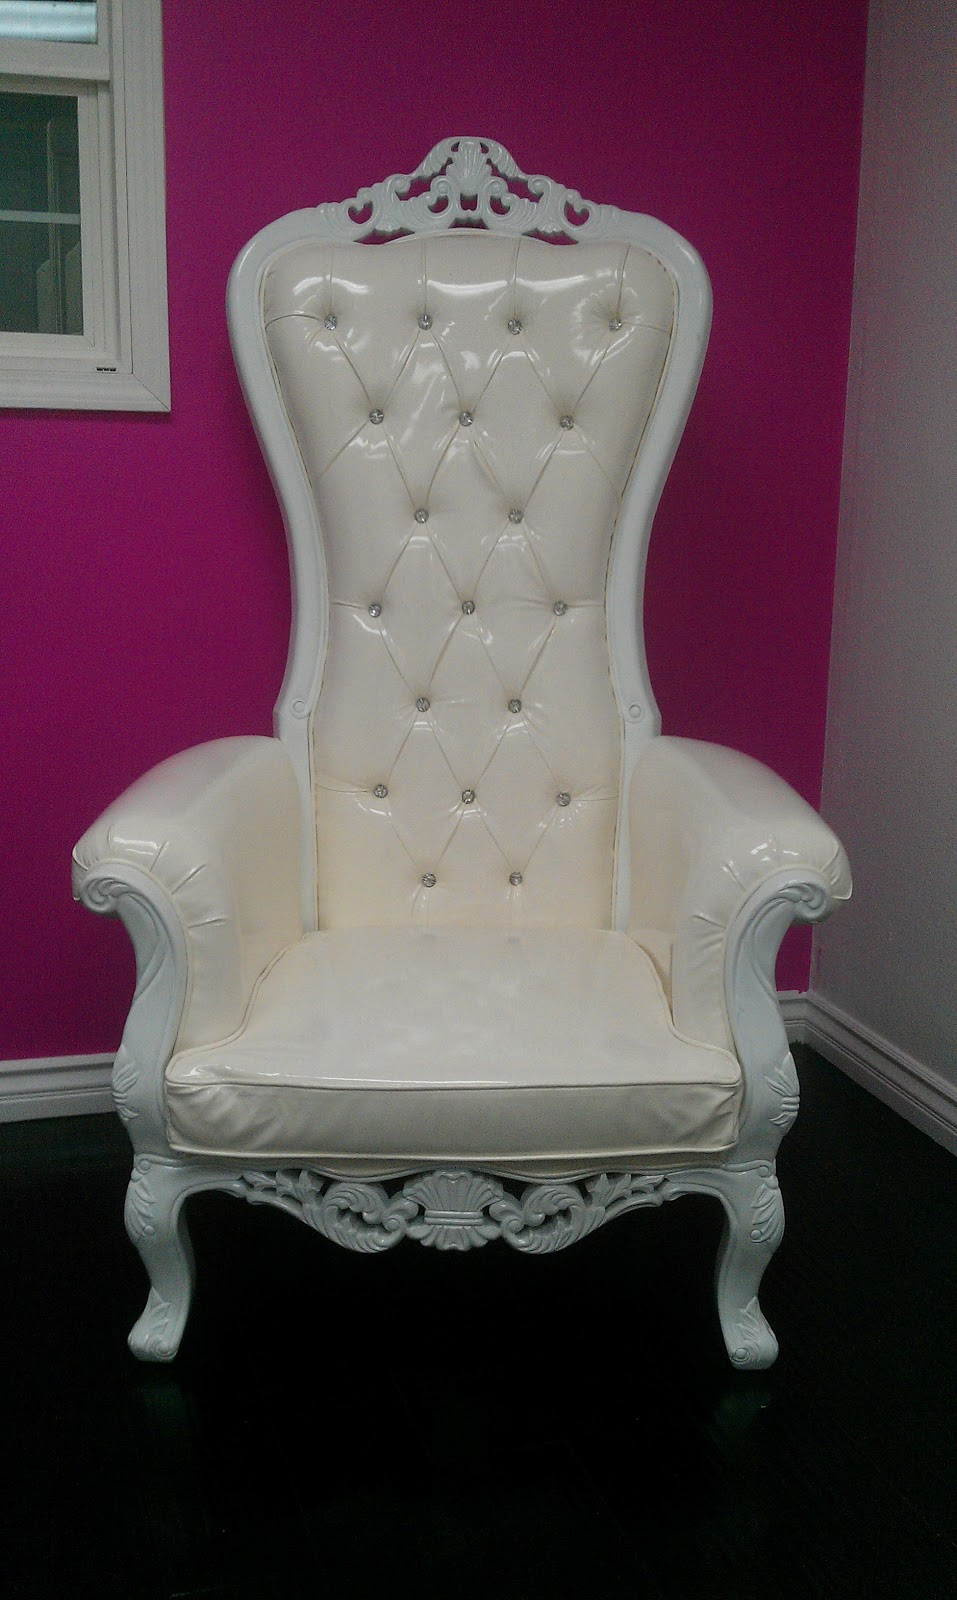 The Mod Spot New Rental Kings Chairs Thrones